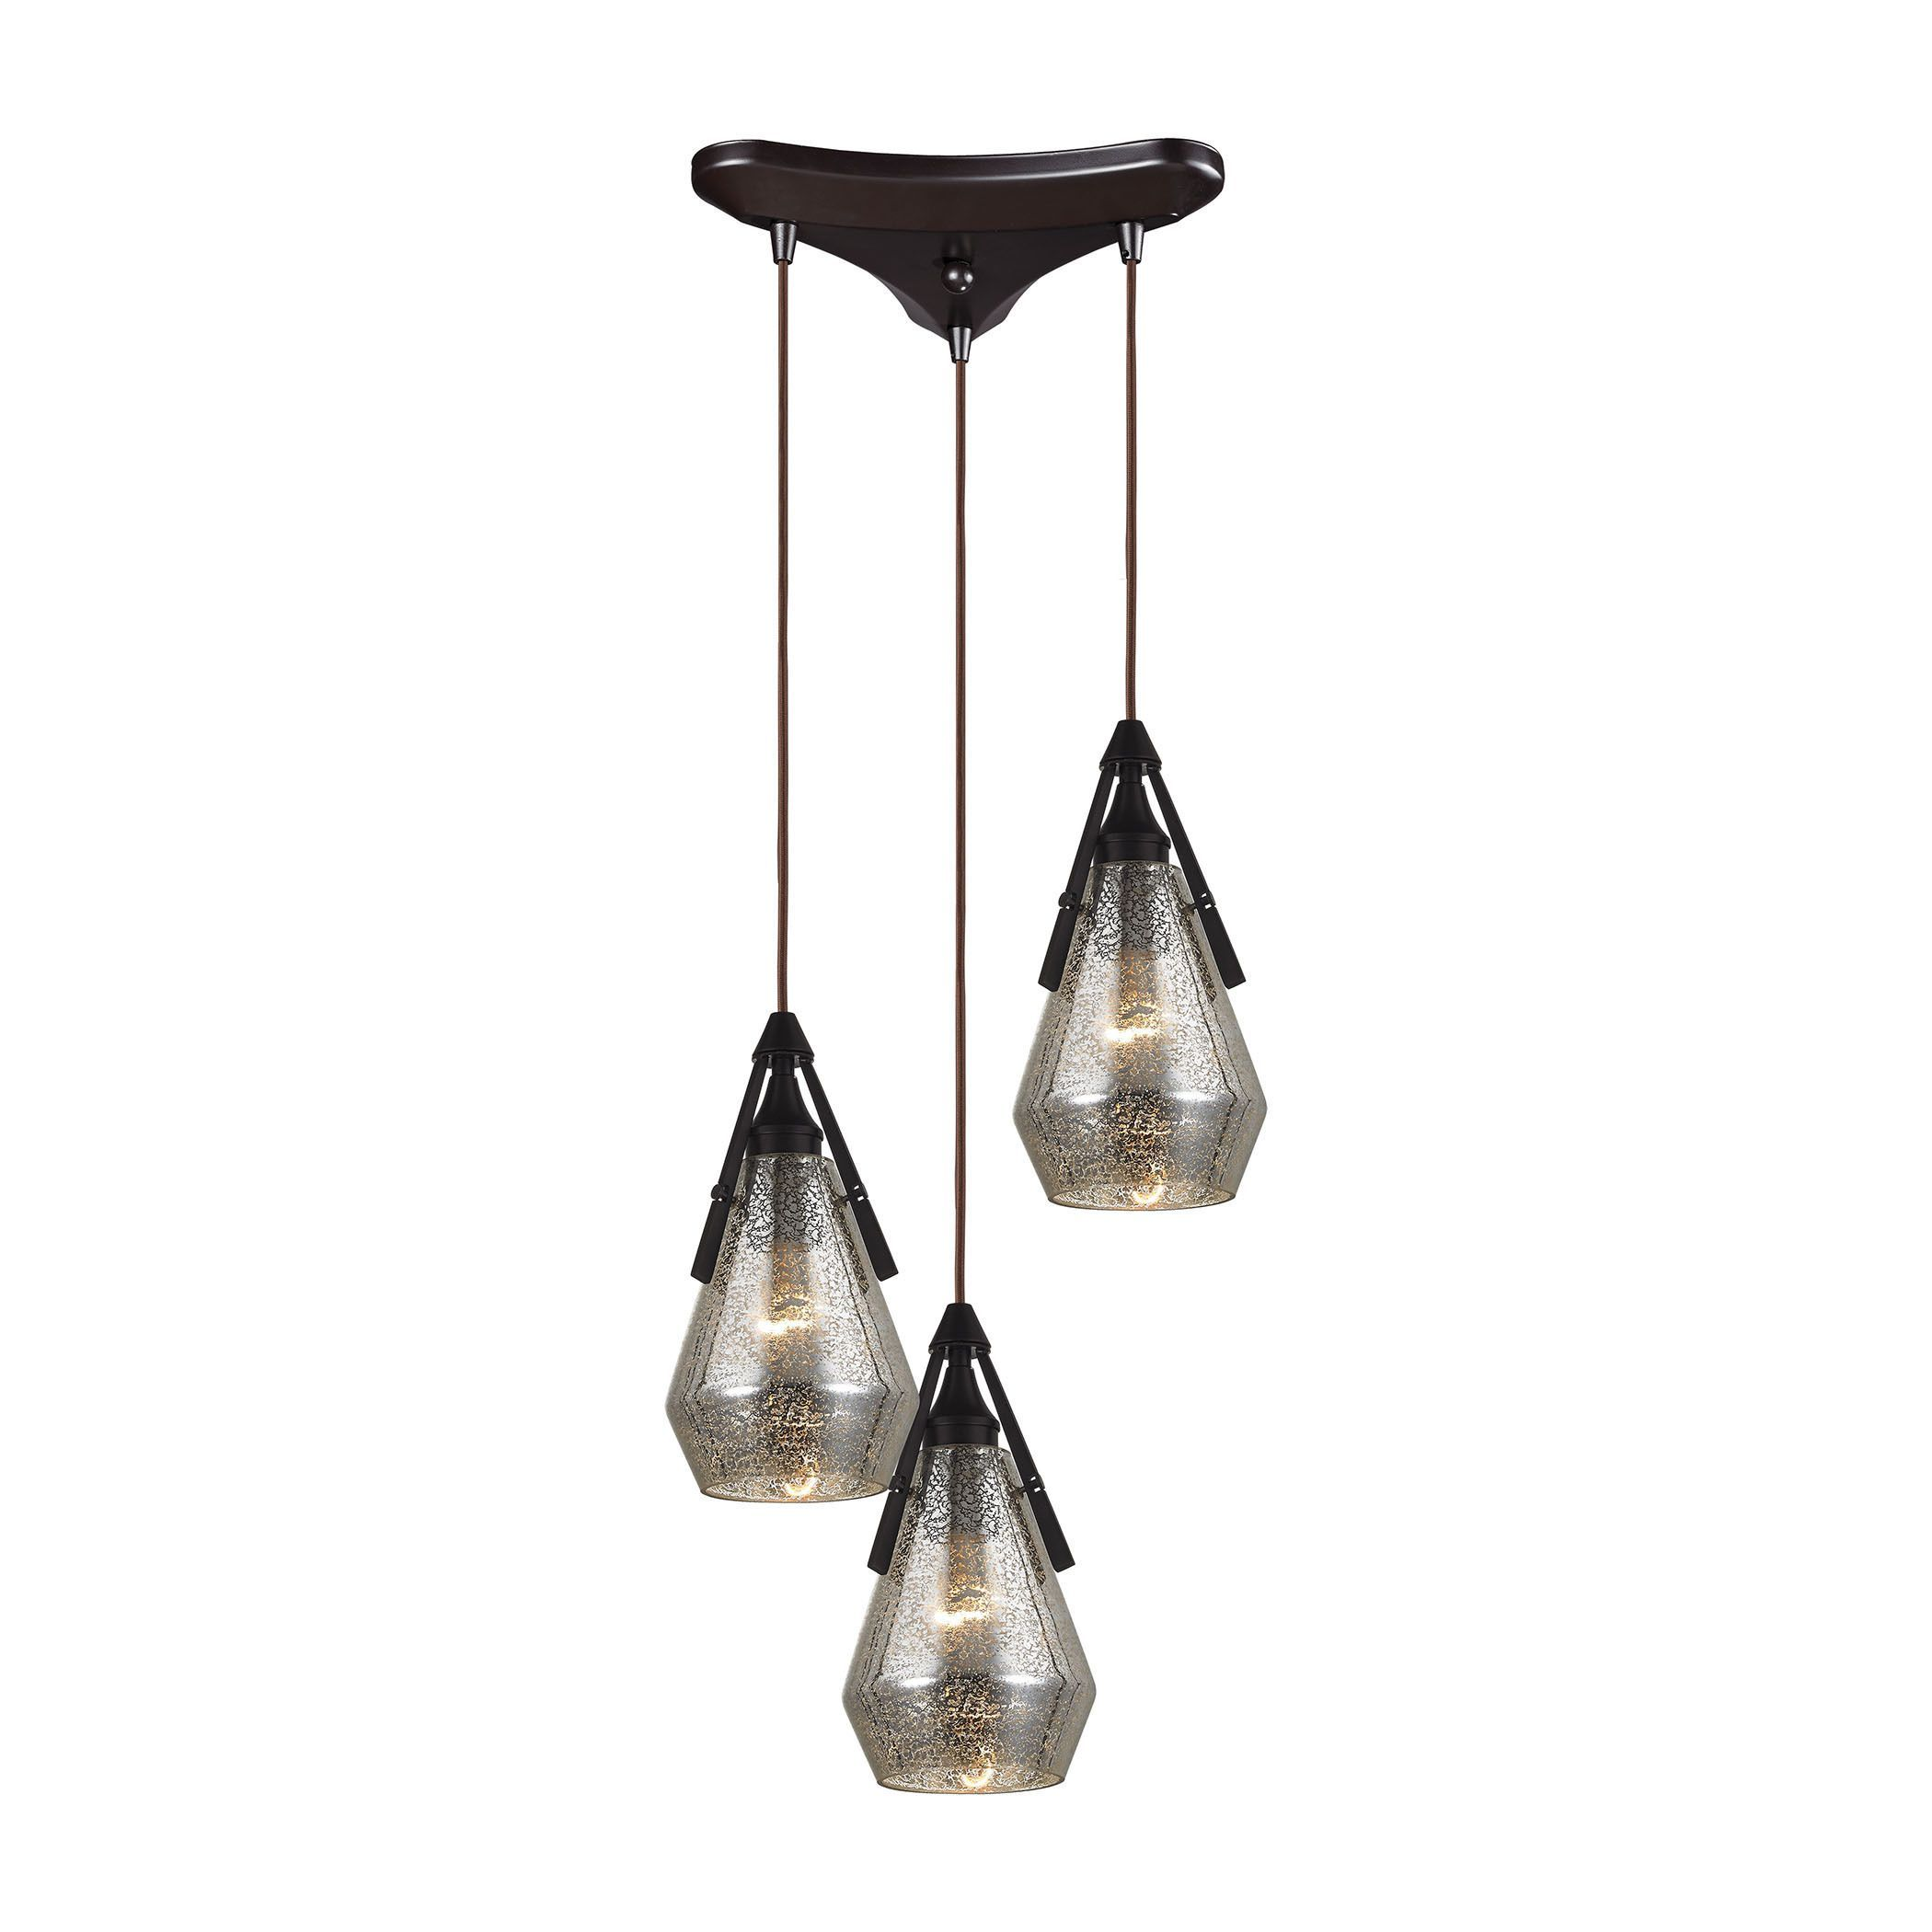 lighting glass todays beauty pendant pendants sensational chandelier shade with inspiring gull blend incredible fixtures chandeliers pretty sea lights mercury light timeless that lamp styling